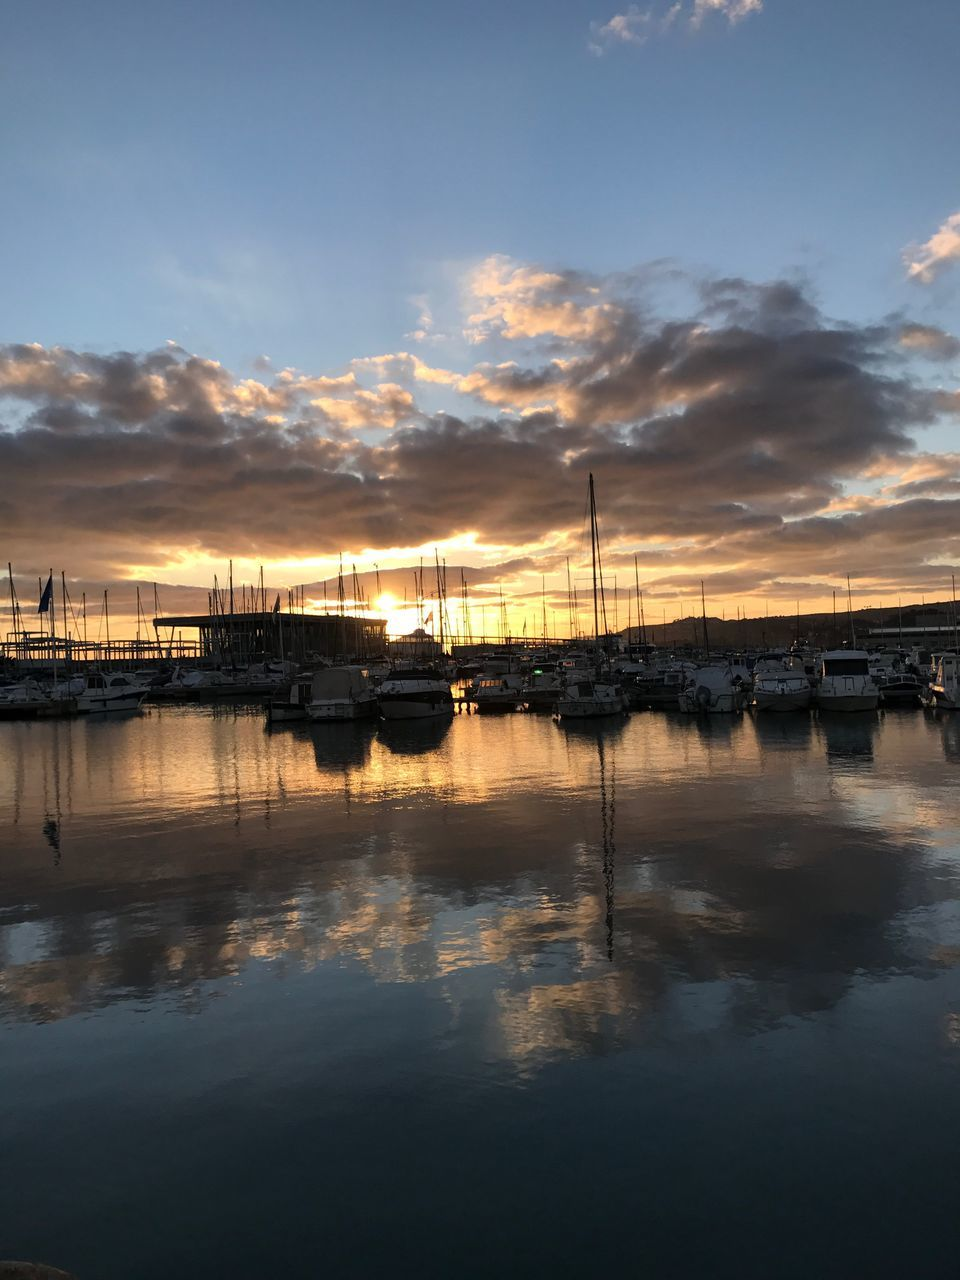 sunset, water, reflection, sky, cloud - sky, beauty in nature, scenics, tranquility, tranquil scene, nautical vessel, nature, waterfront, sea, no people, transportation, moored, outdoors, mode of transport, silhouette, harbor, mast, day